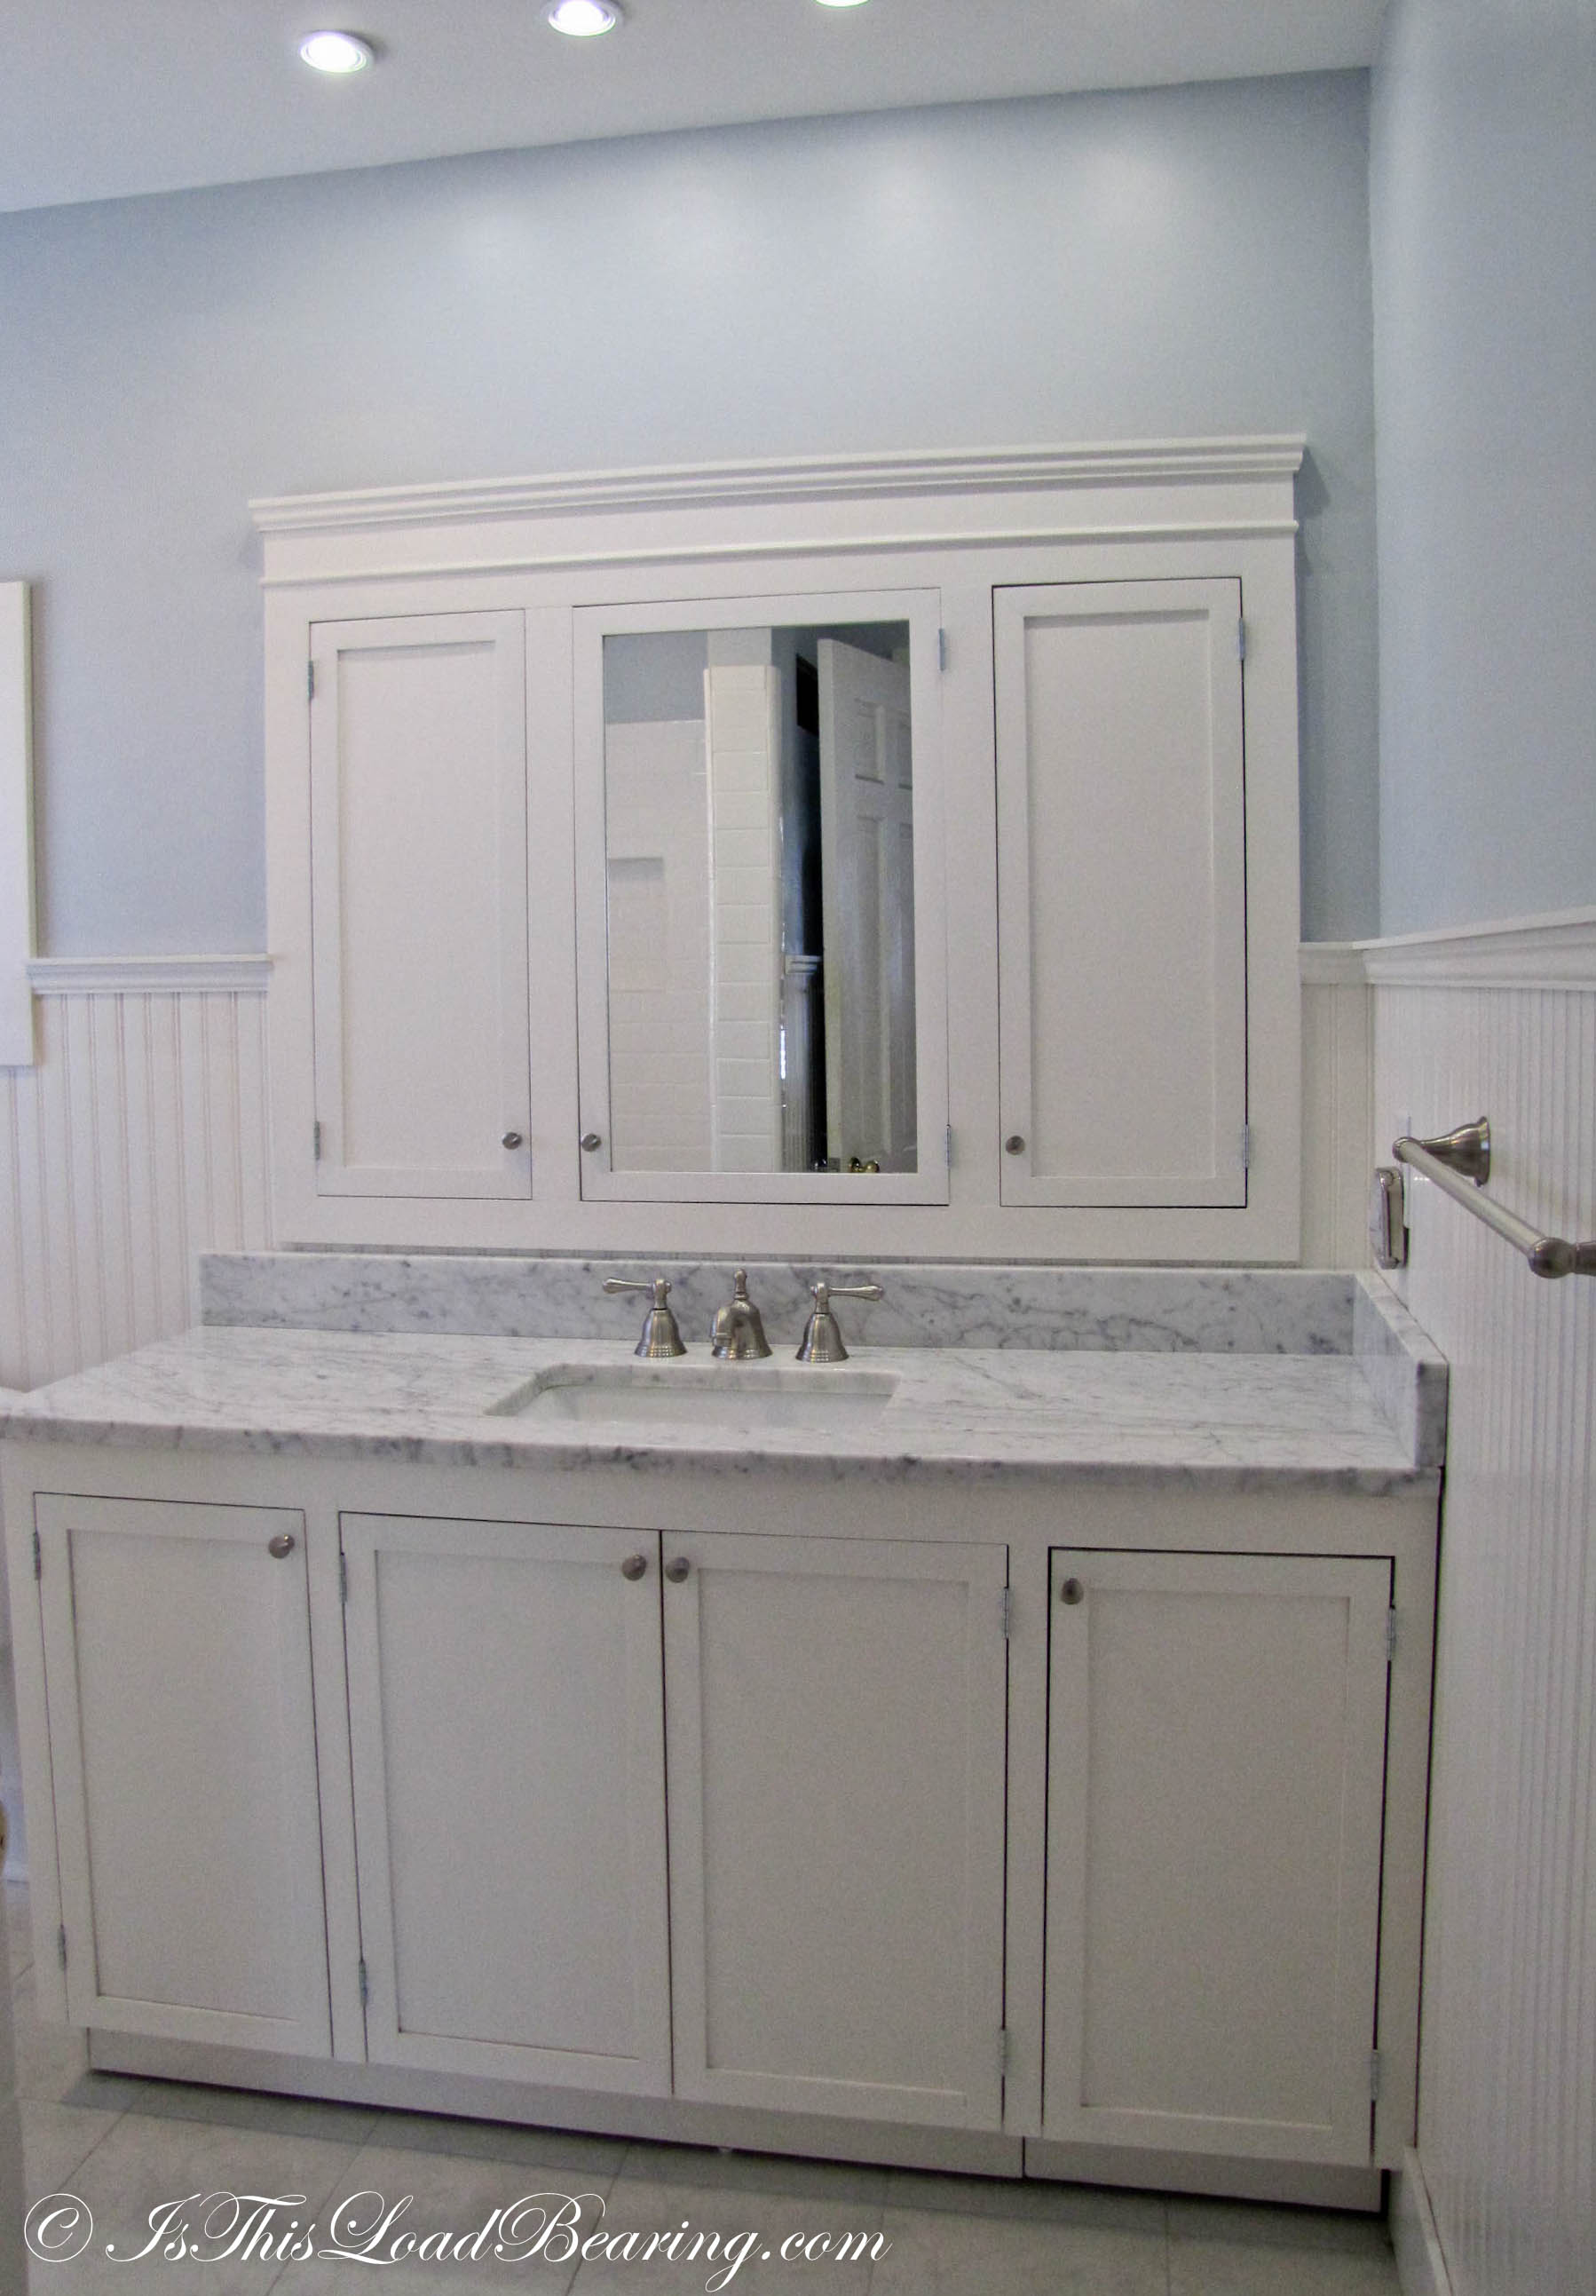 Bathroom Cabinets Over Sink - Bathroom above sink cabinets